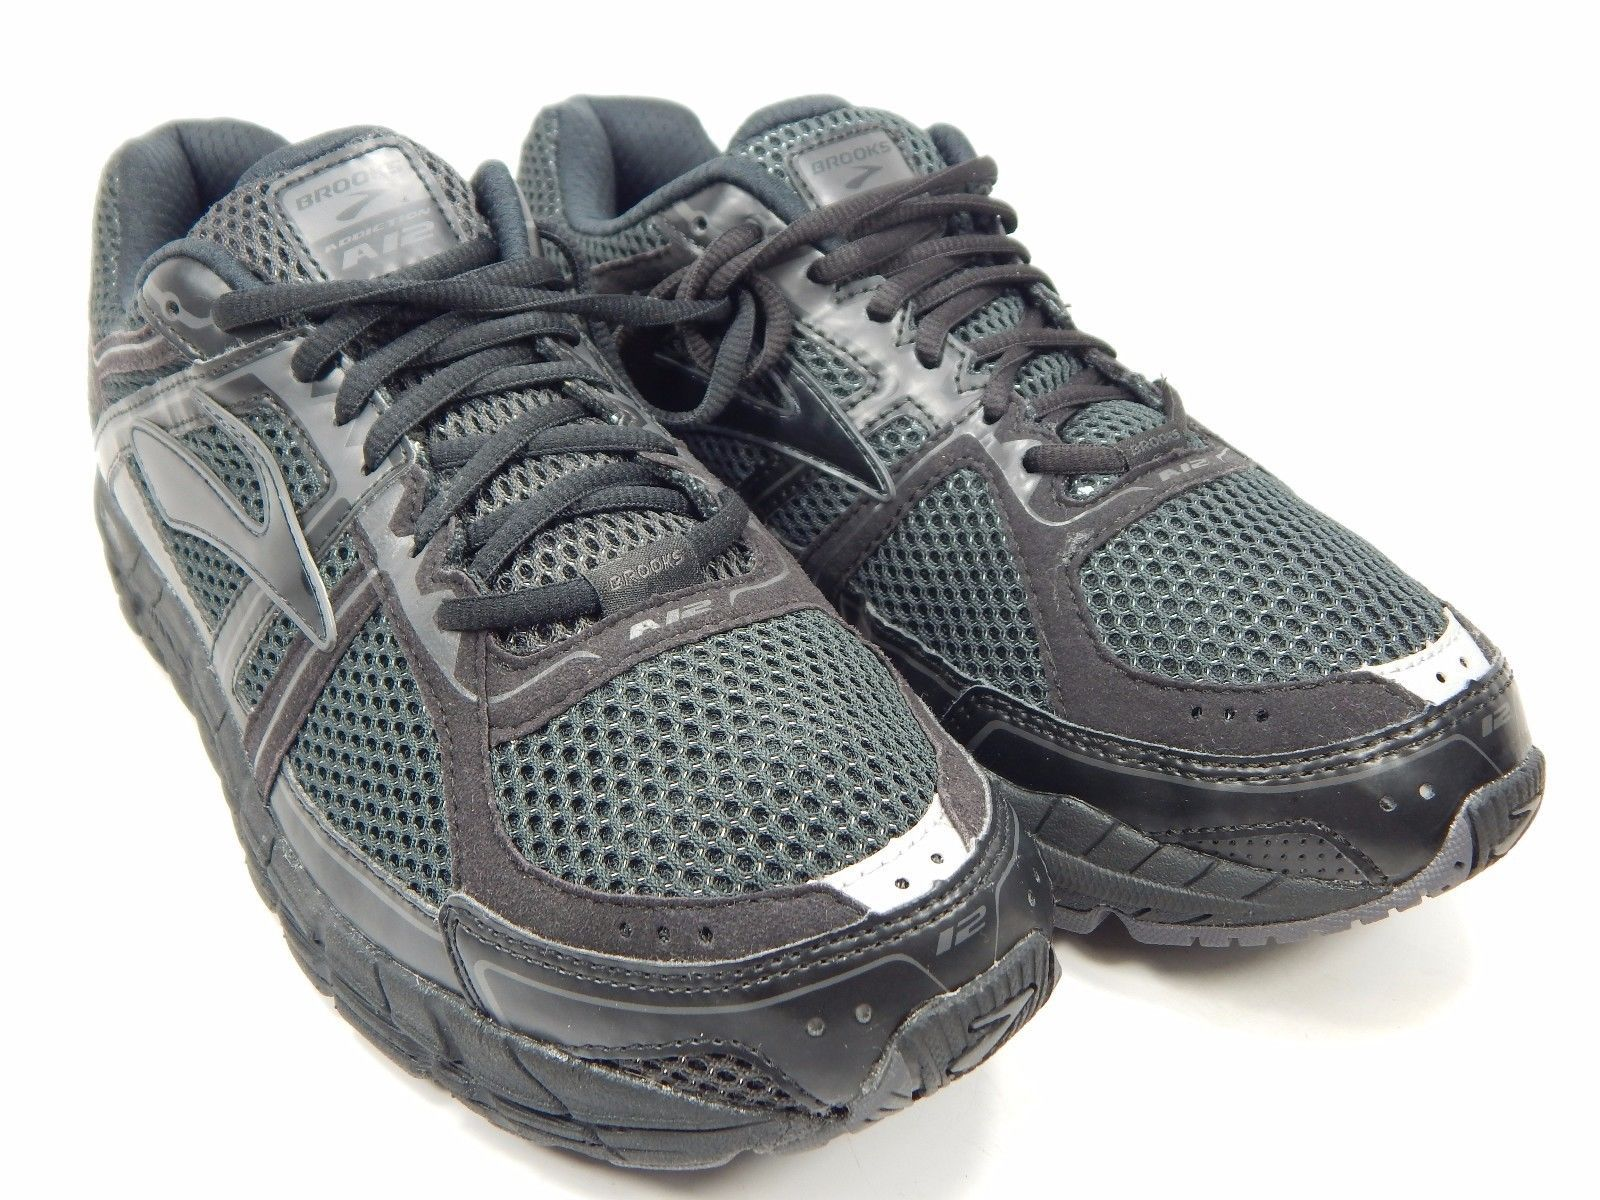 MISMATCH Brooks Addiction 12 Men's Shoes Size 10 M (D) Left & 8.5 M (D) Right